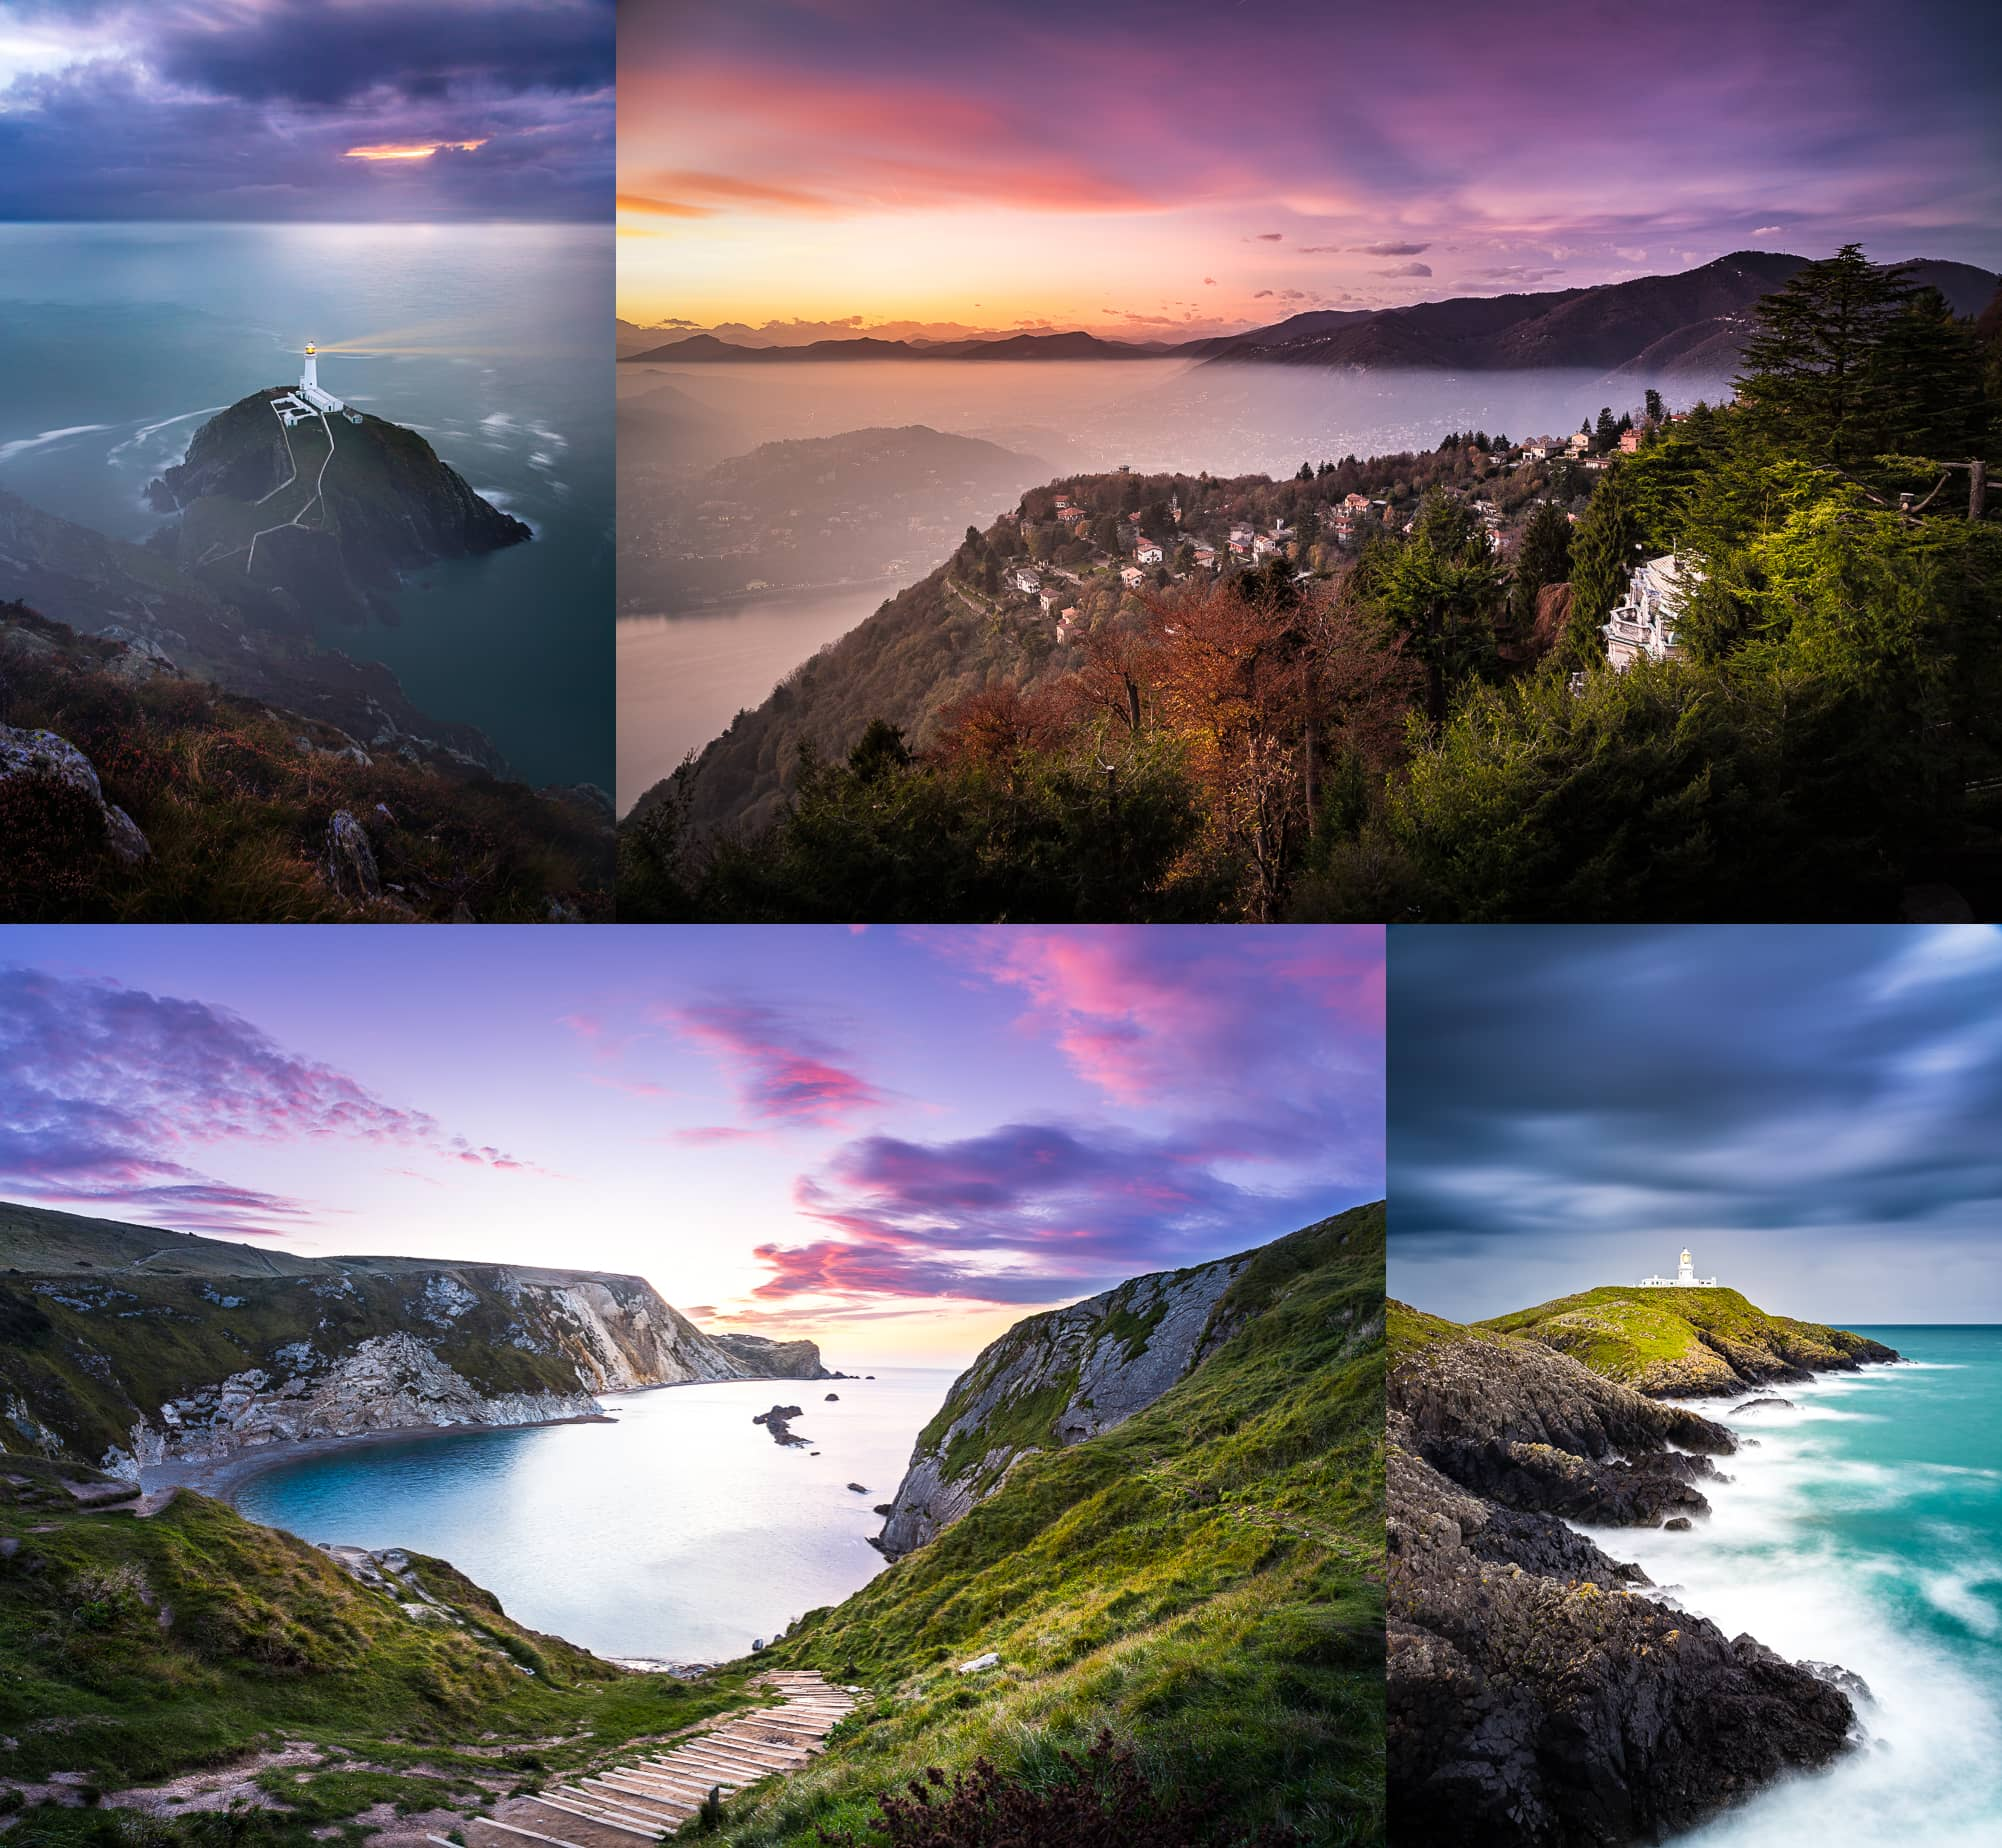 South Stack Lighthouse in Wales, Brunate Italy, Lulworth Cove in England, and Strumble Head Lighthouse in Wales